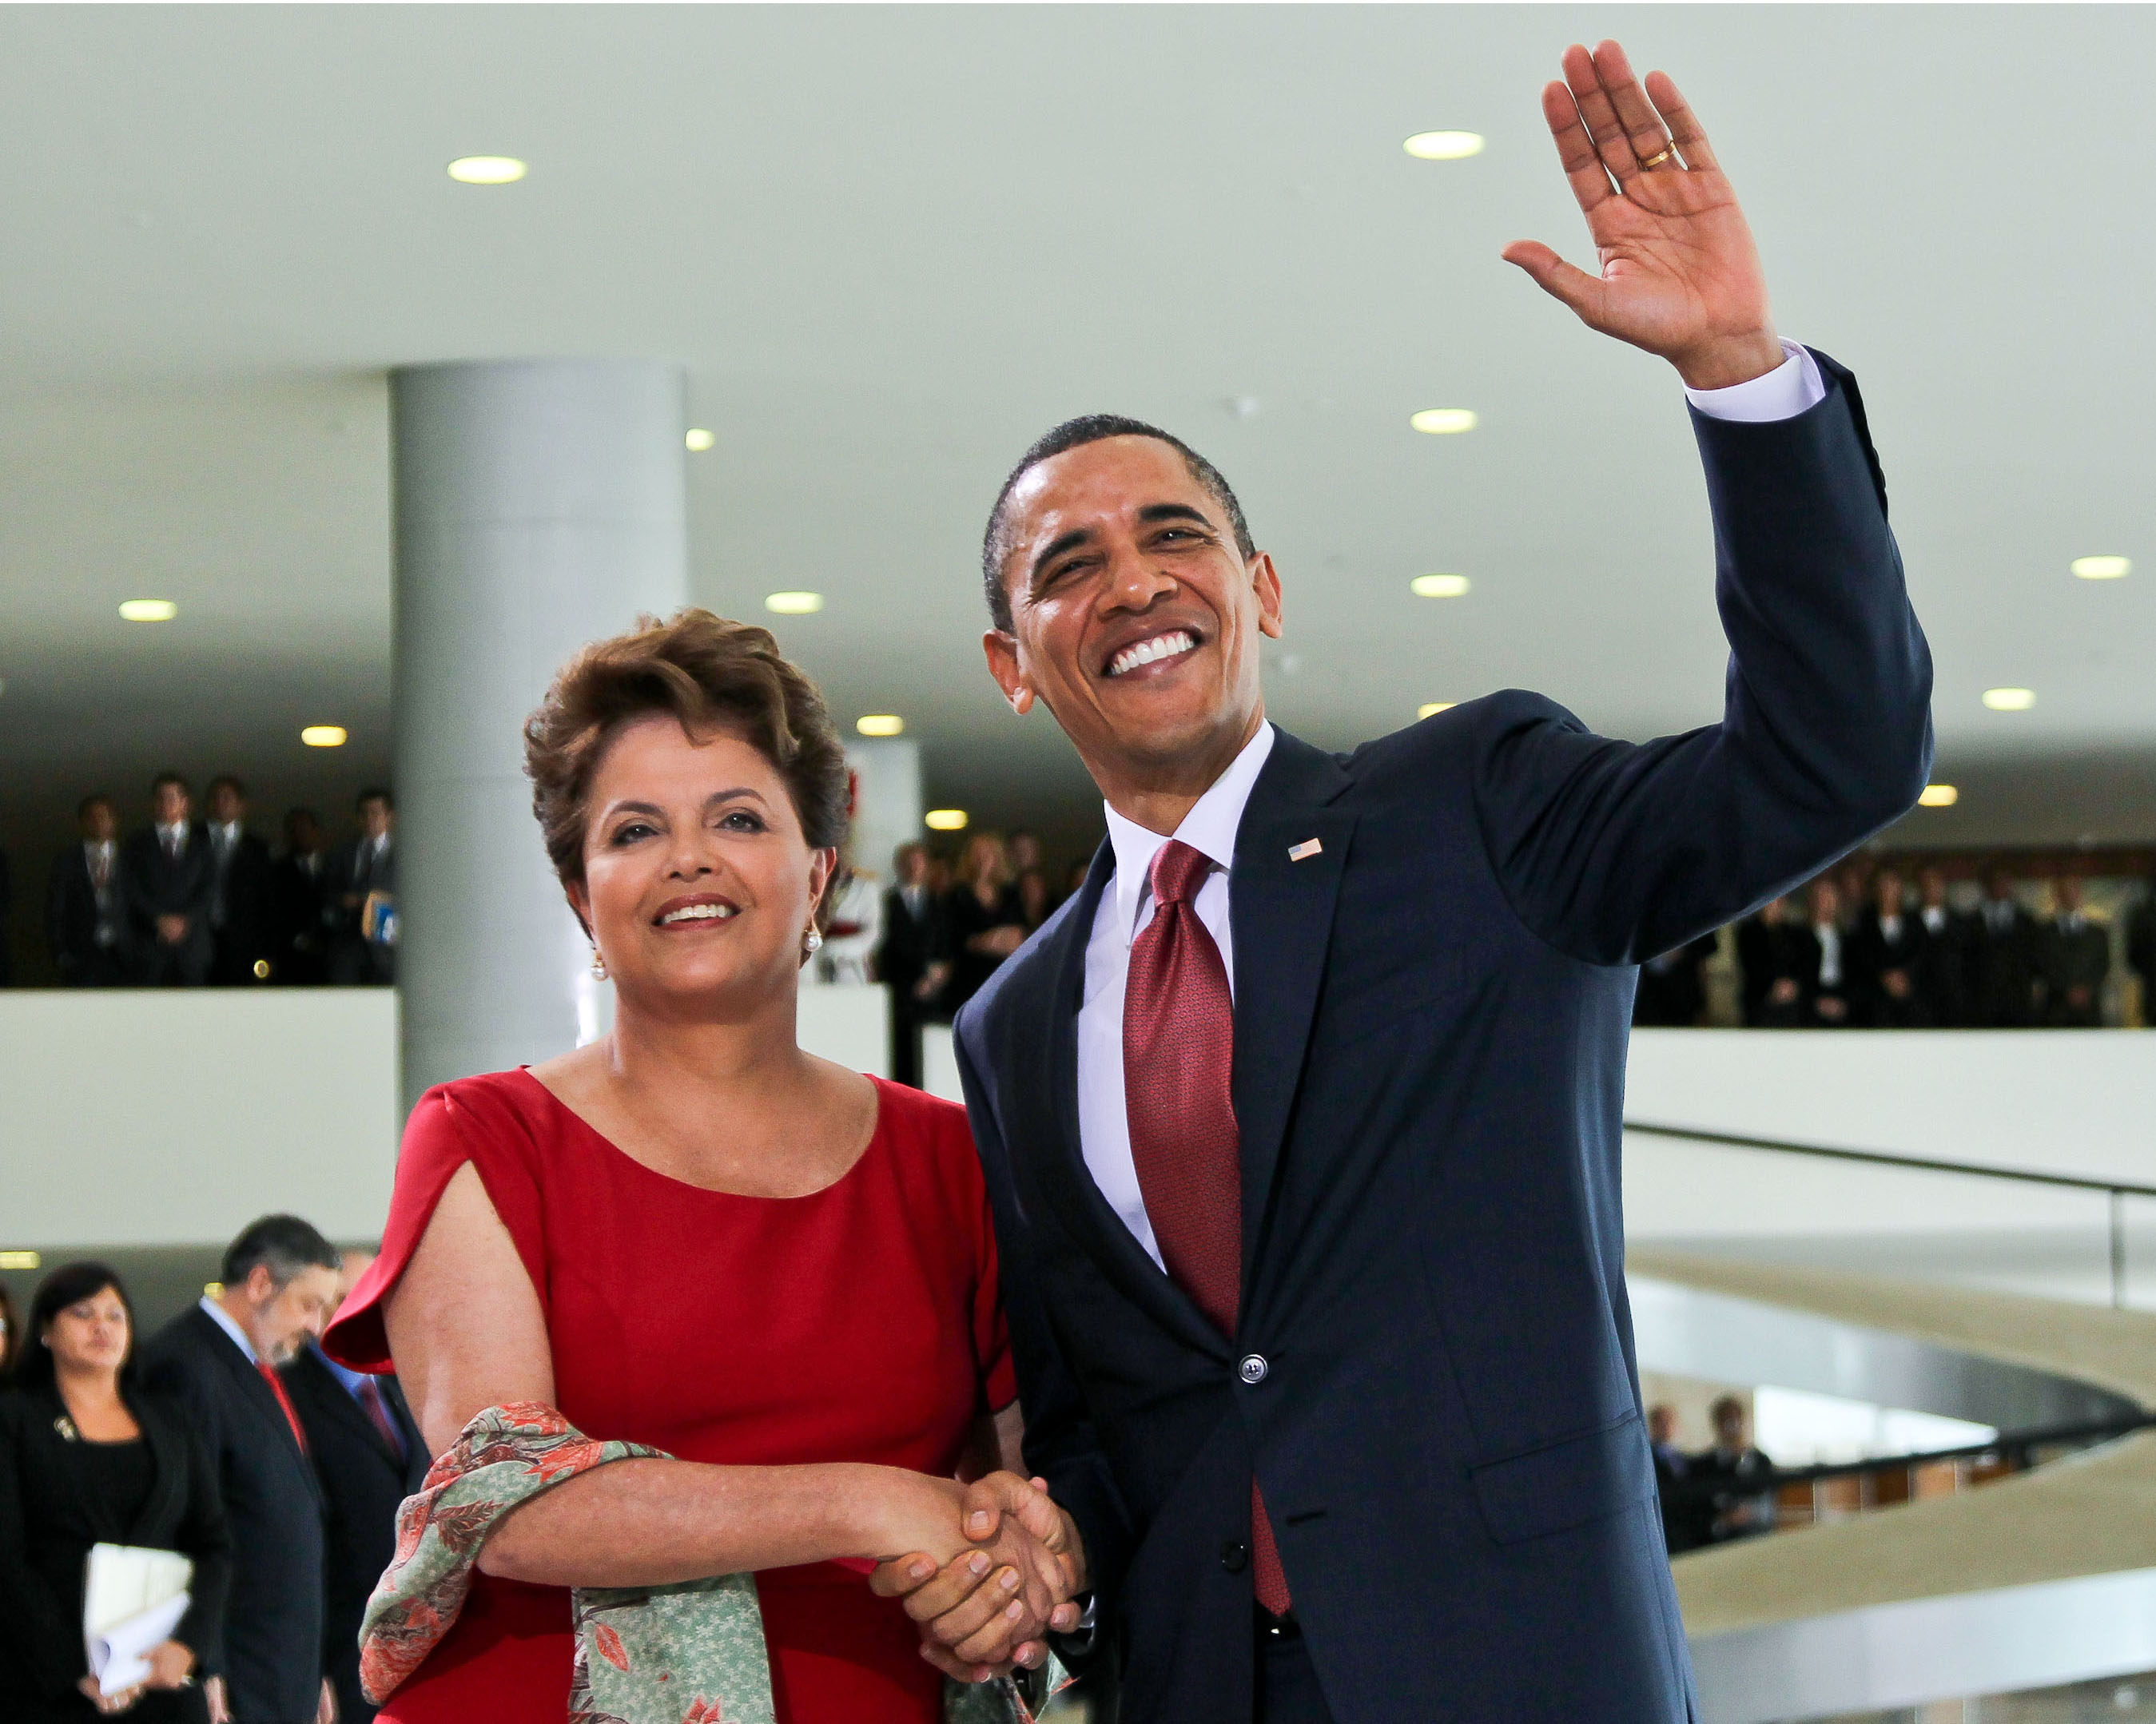 Obama in brazil photos Watching Obamas Watch The First Five Years